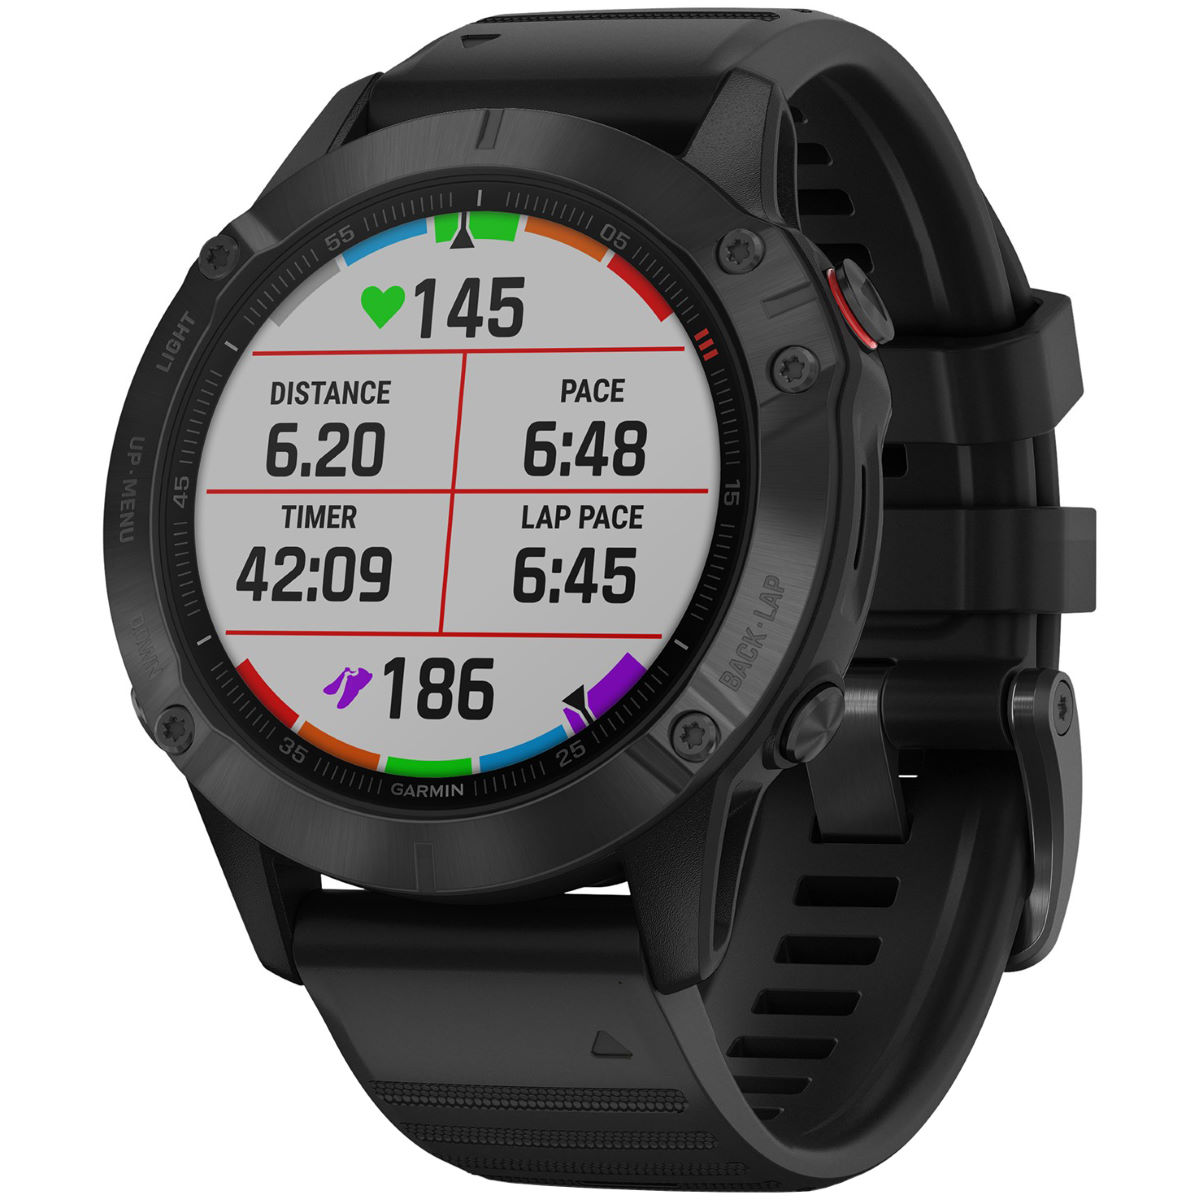 Garmin Garmin Fenix 6 Pro Multisport GPS Watch   Watches